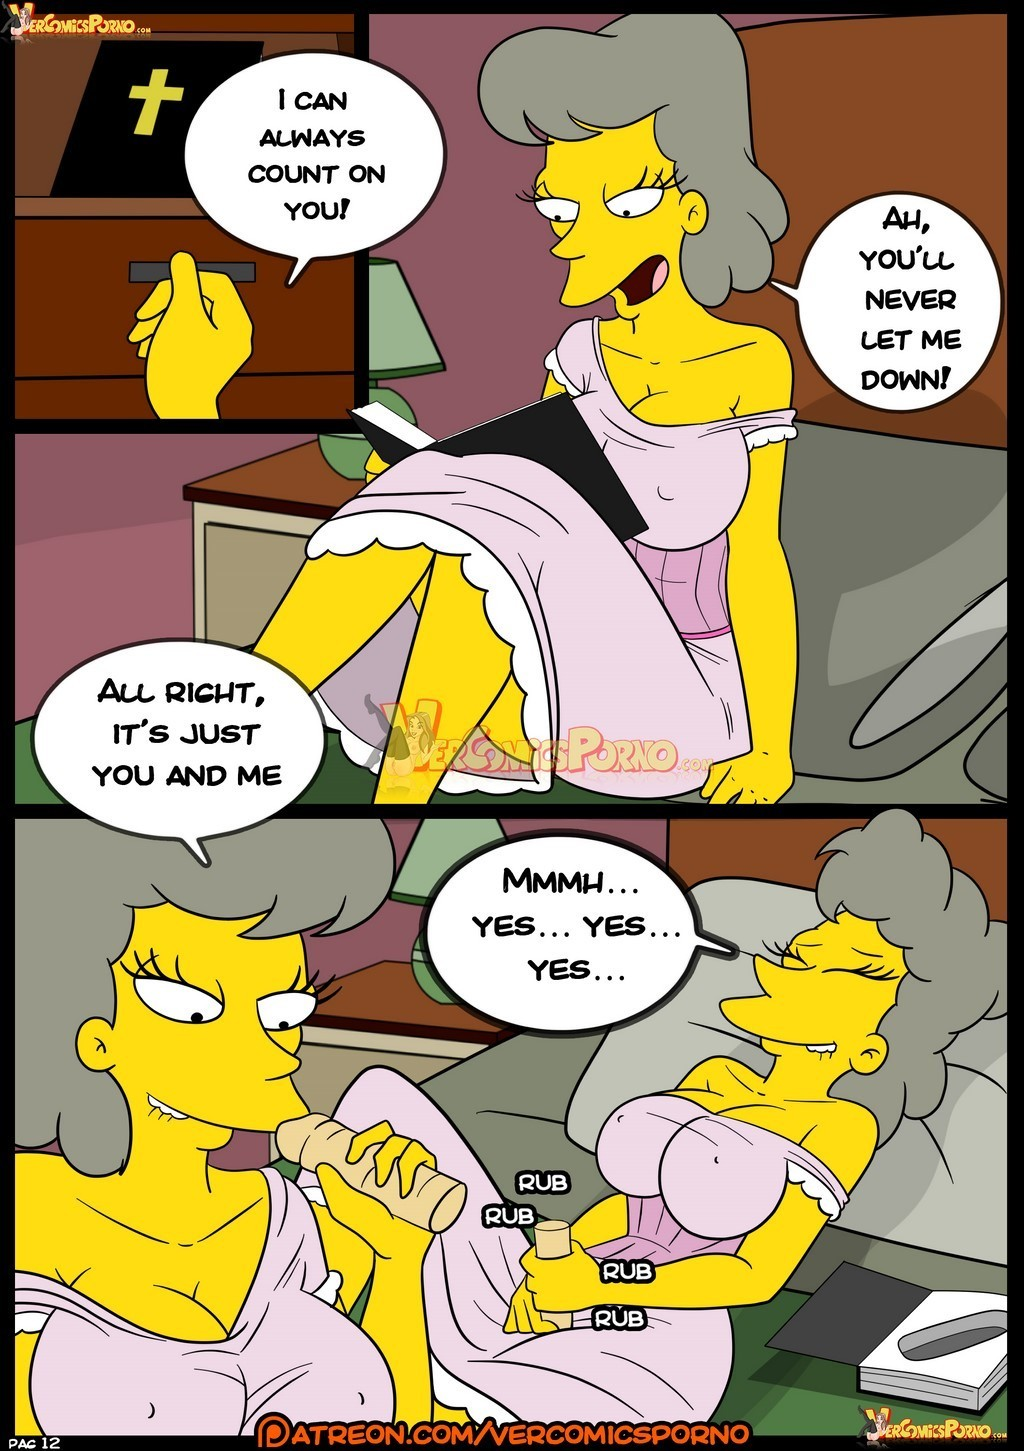 13 15 - The Simpsons. Part 8.